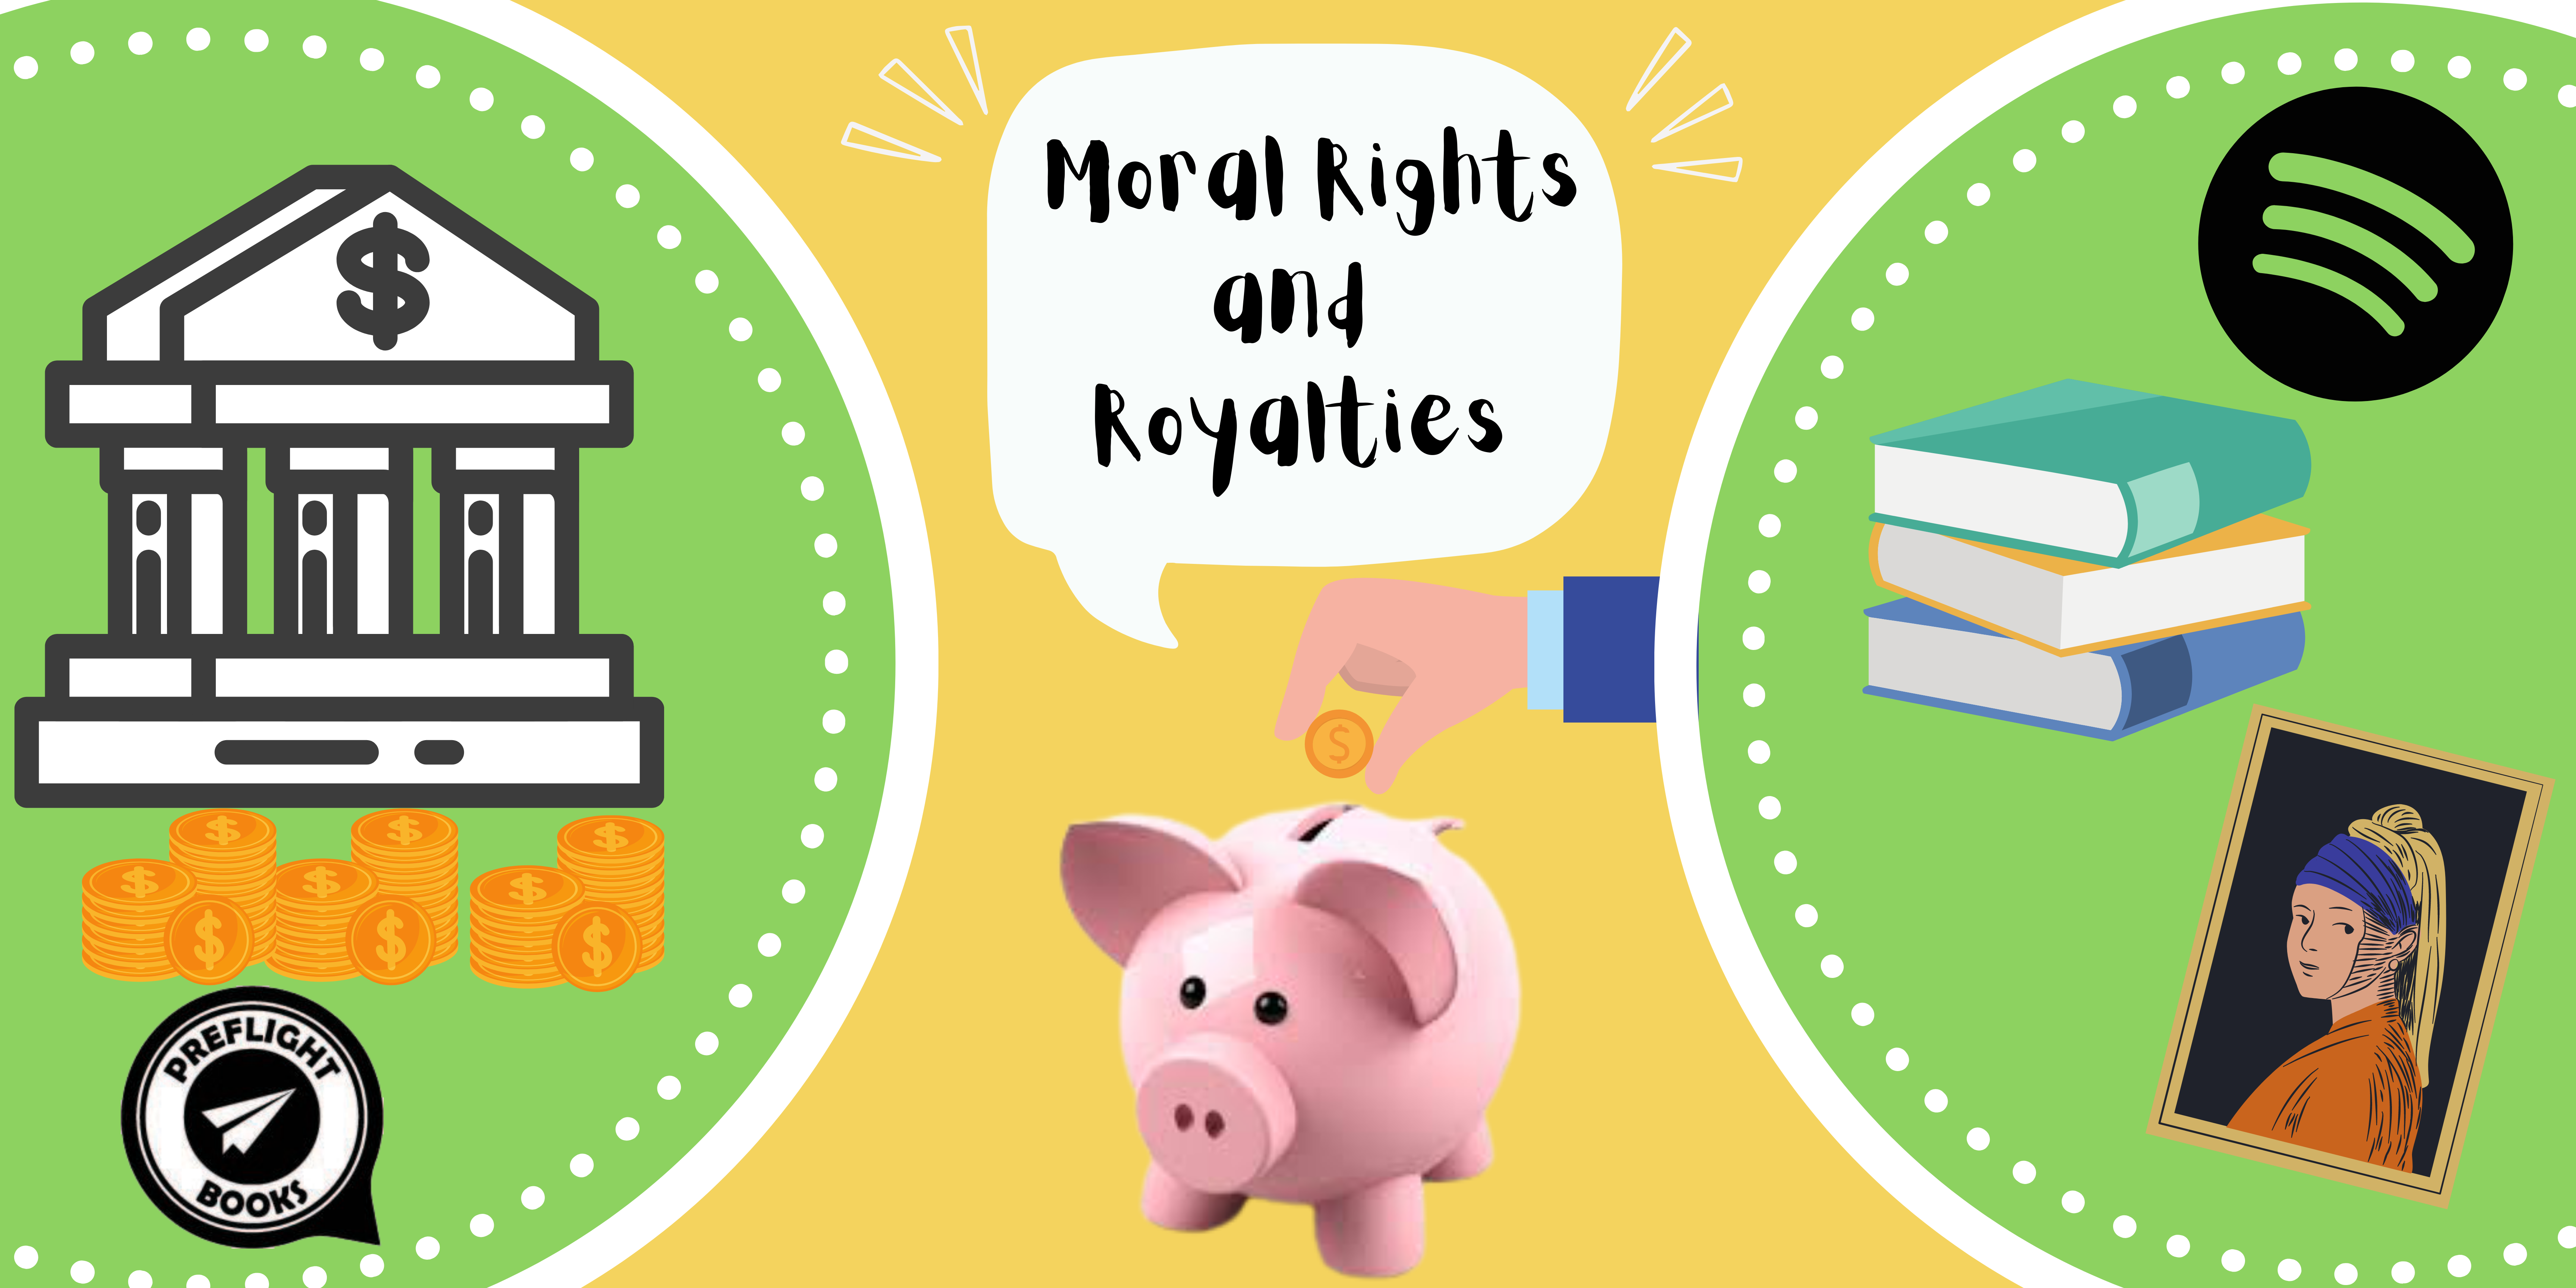 moral right and royalties